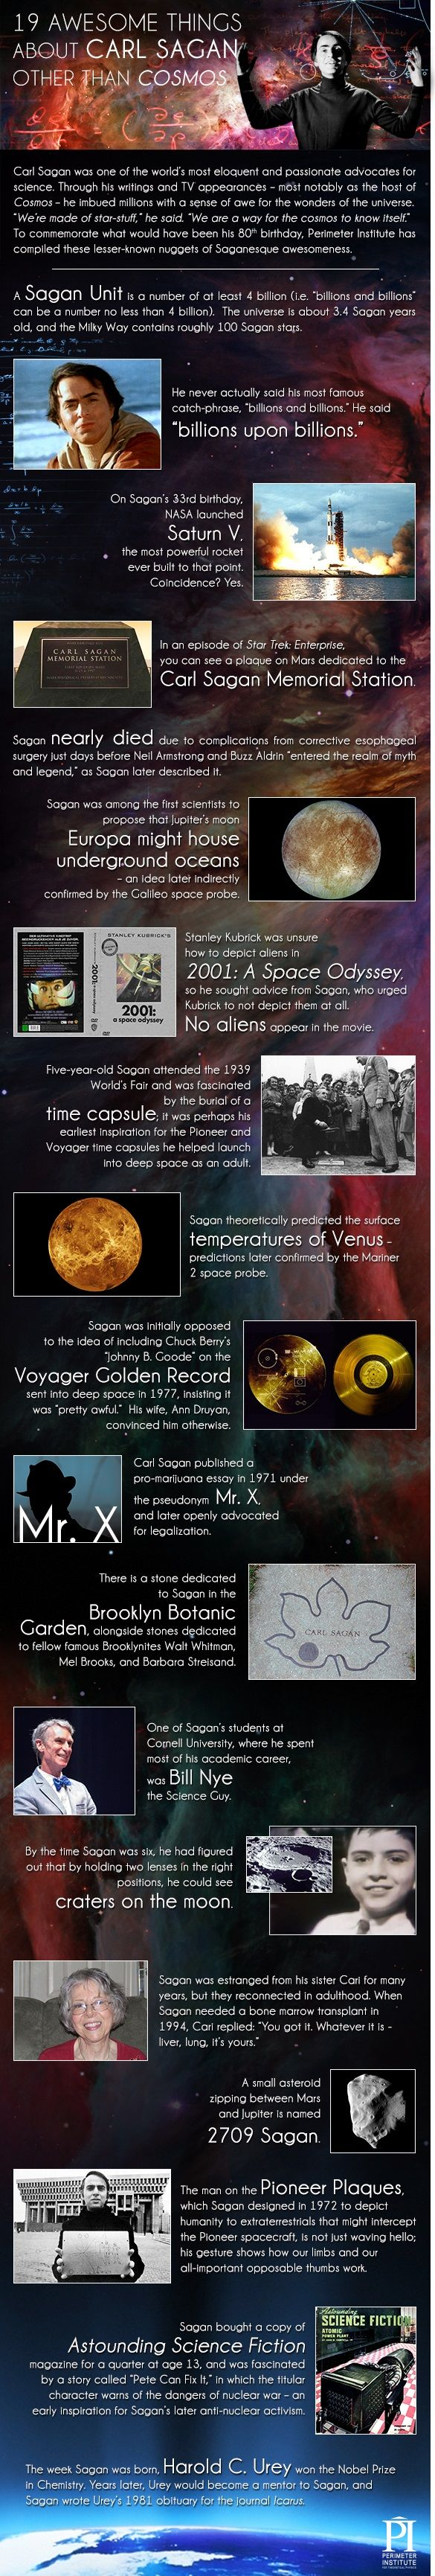 19 Awesome Things about Carl Sagan | Perimeter Institute